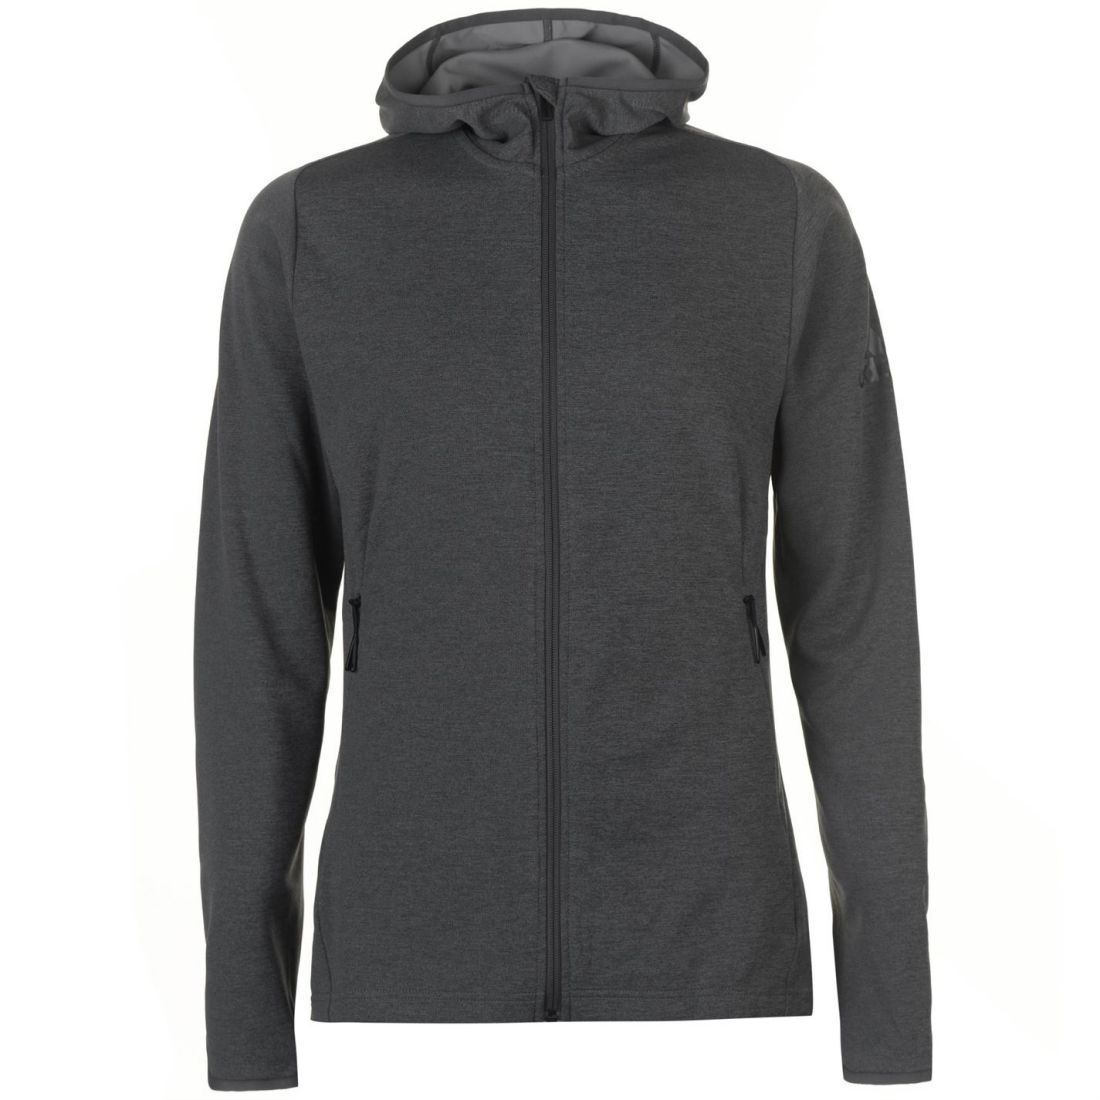 Adidas Zipped Climacool Hoodie Mens Gents Oth Hoody Hooded Top Full Length